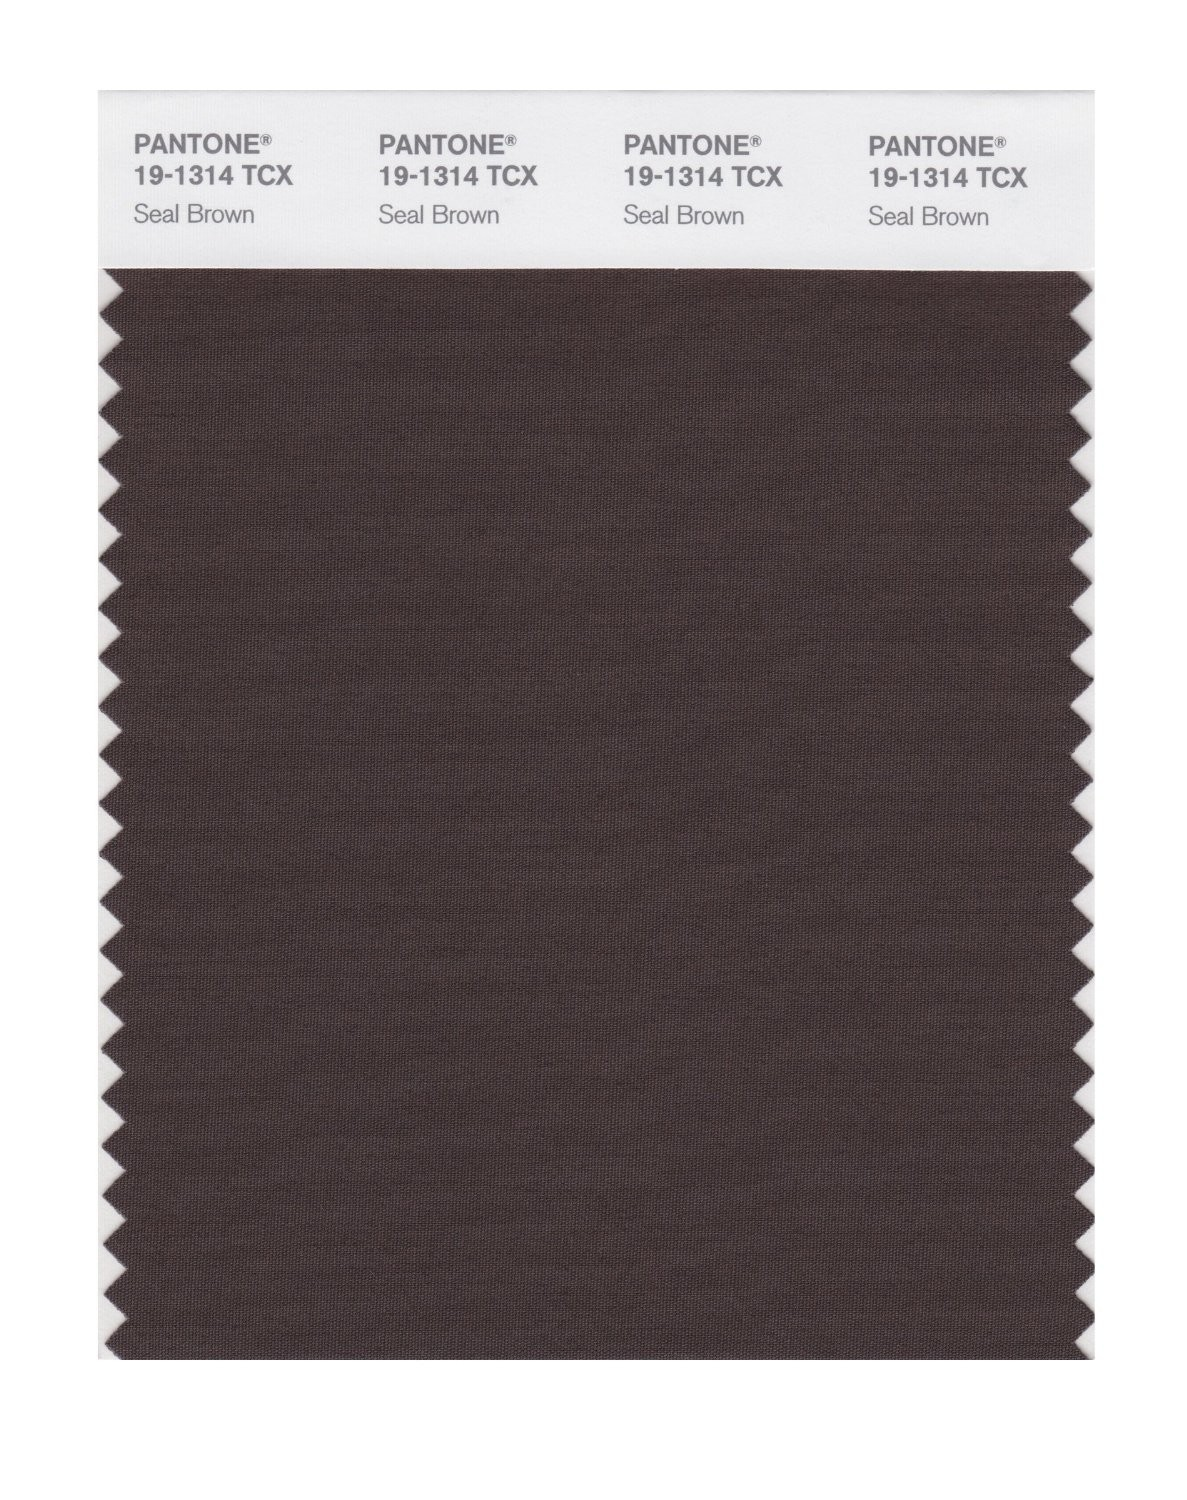 Pantone 19-1314 TCX Swatch Card Seal Brown